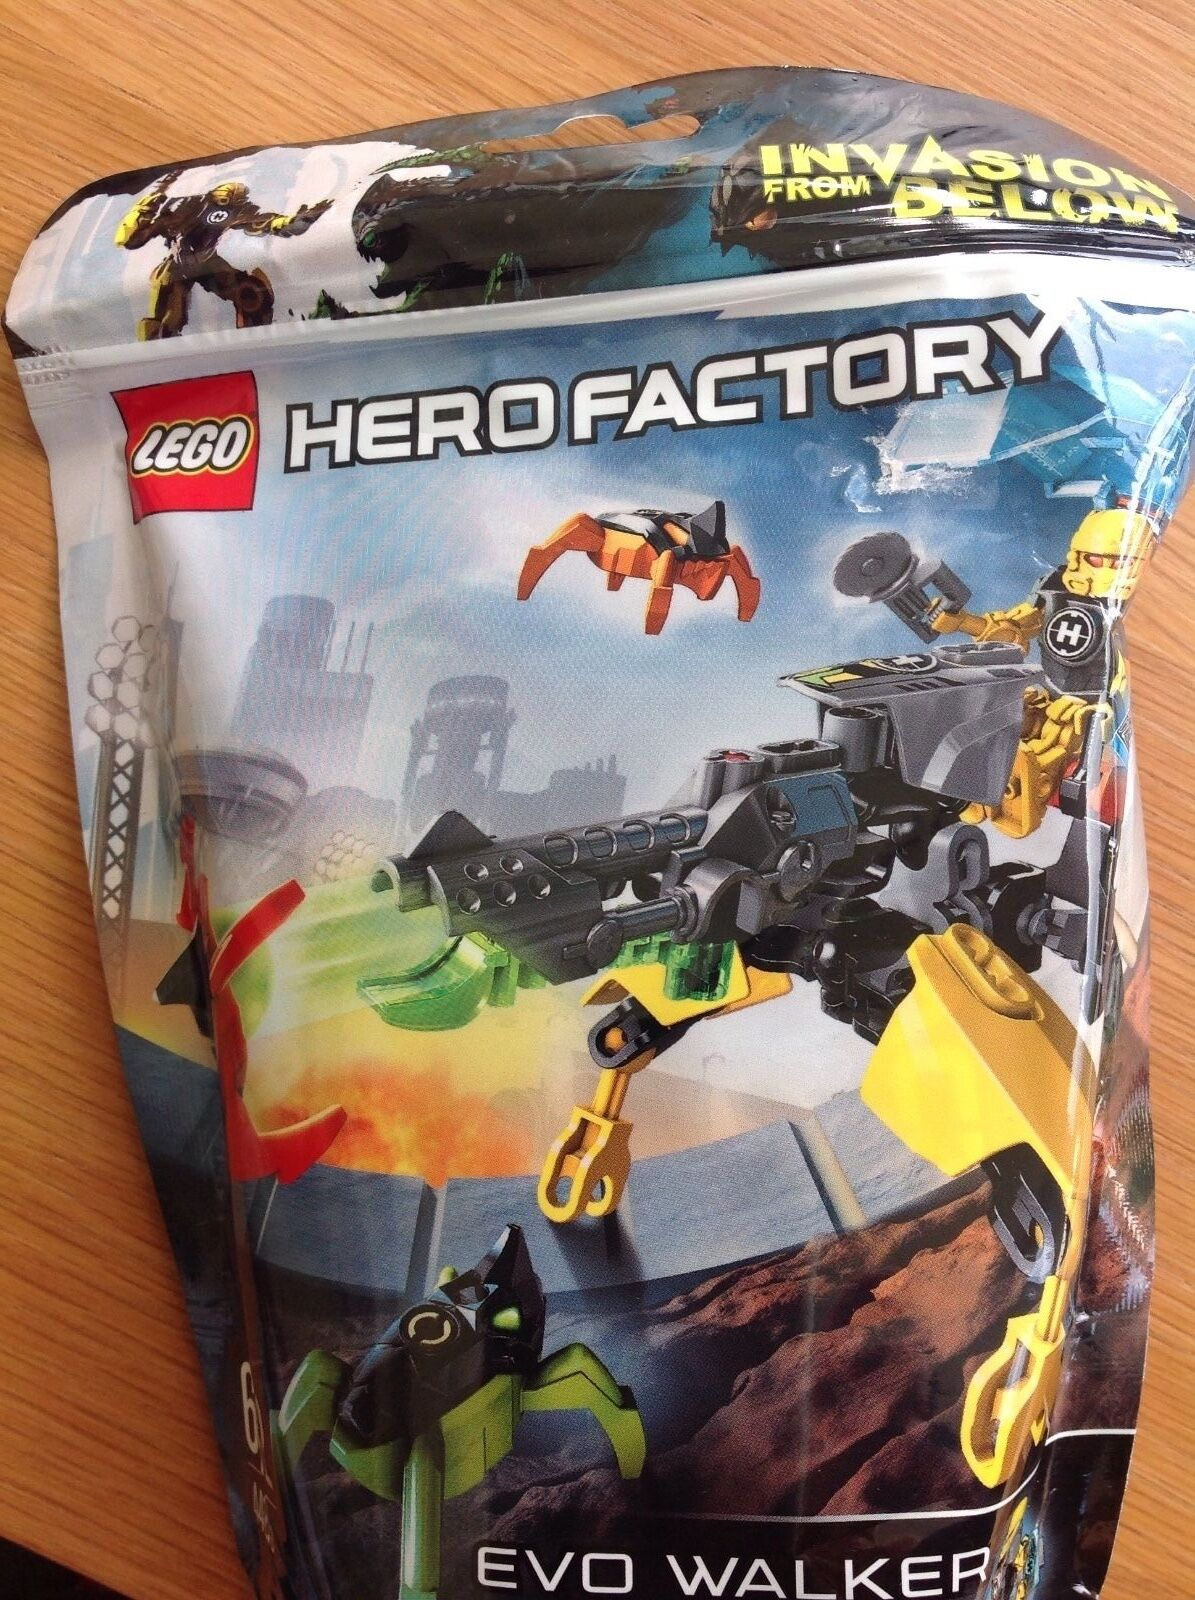 NEW LEGO 44015 Hero Factory Evo Walker Robot Invasion from Below